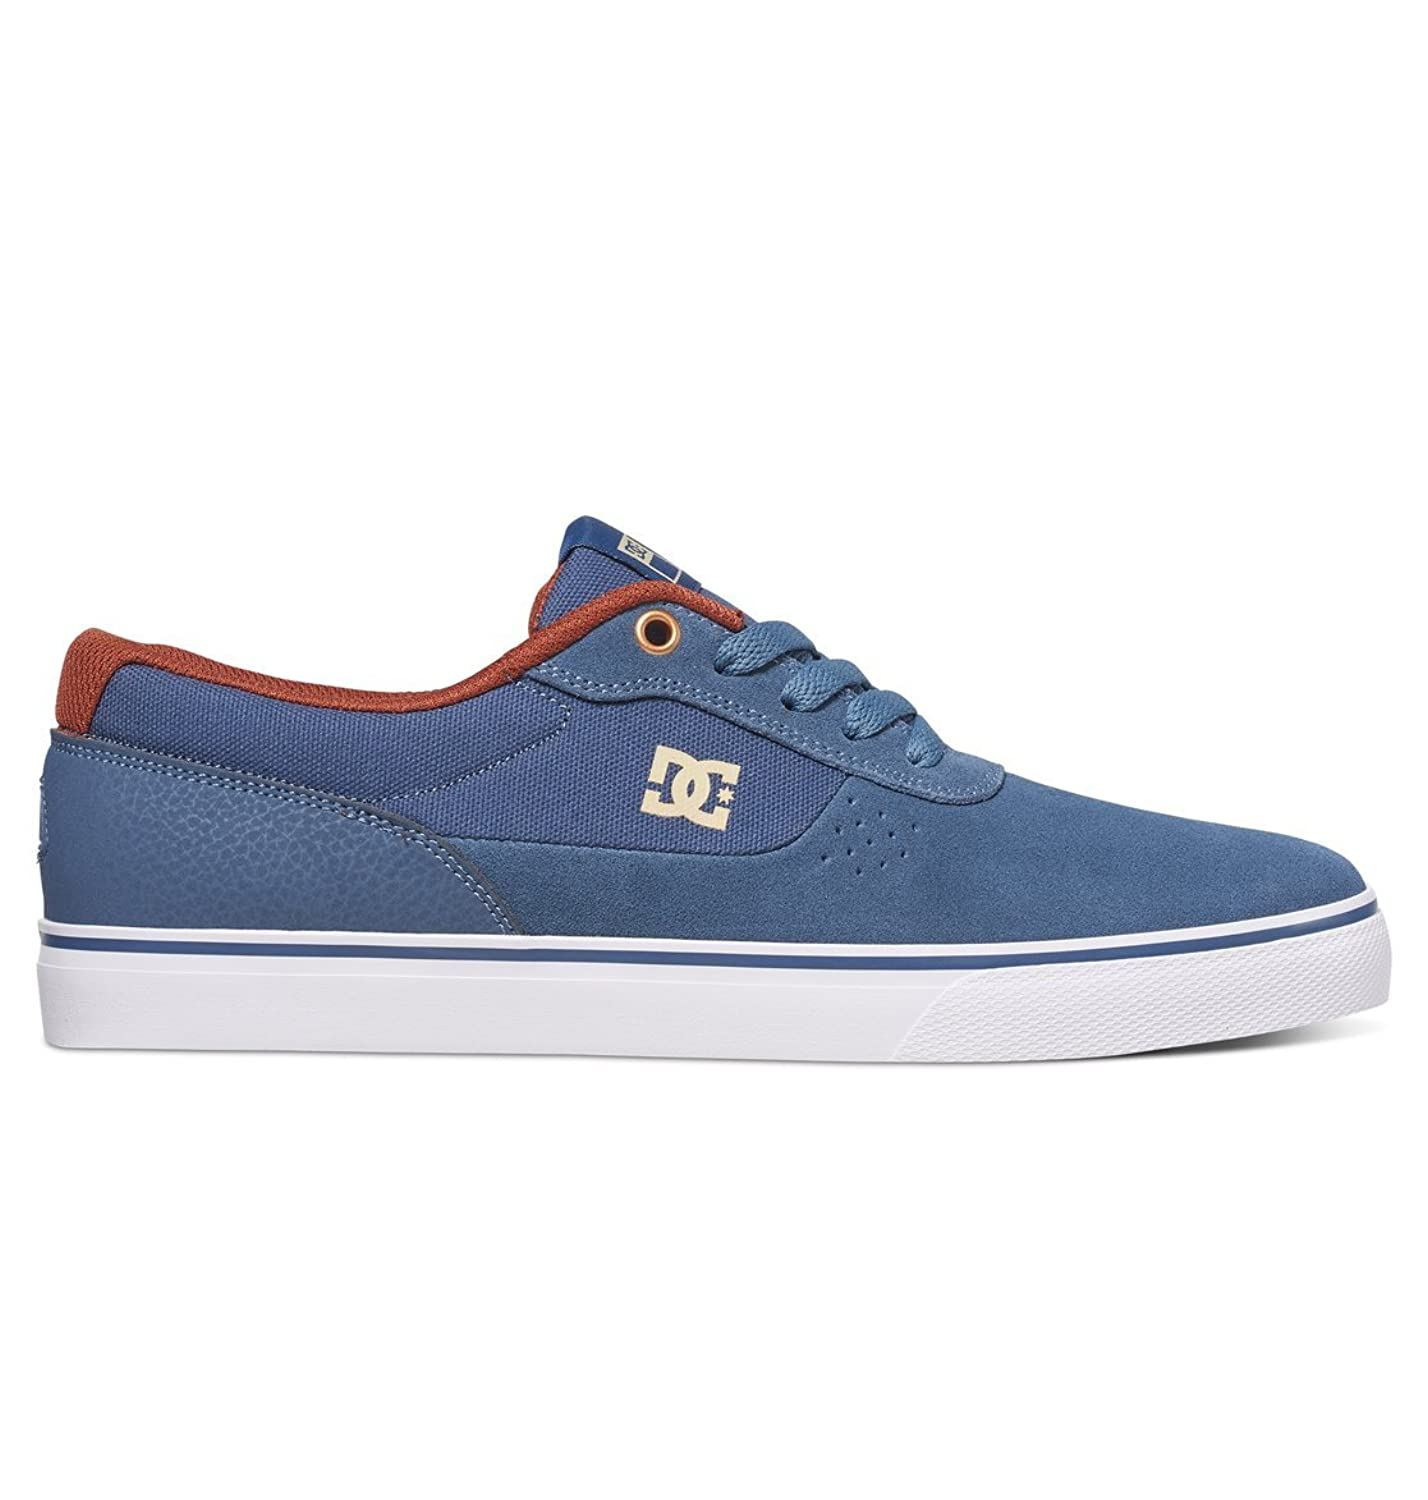 Skate shoes last longer